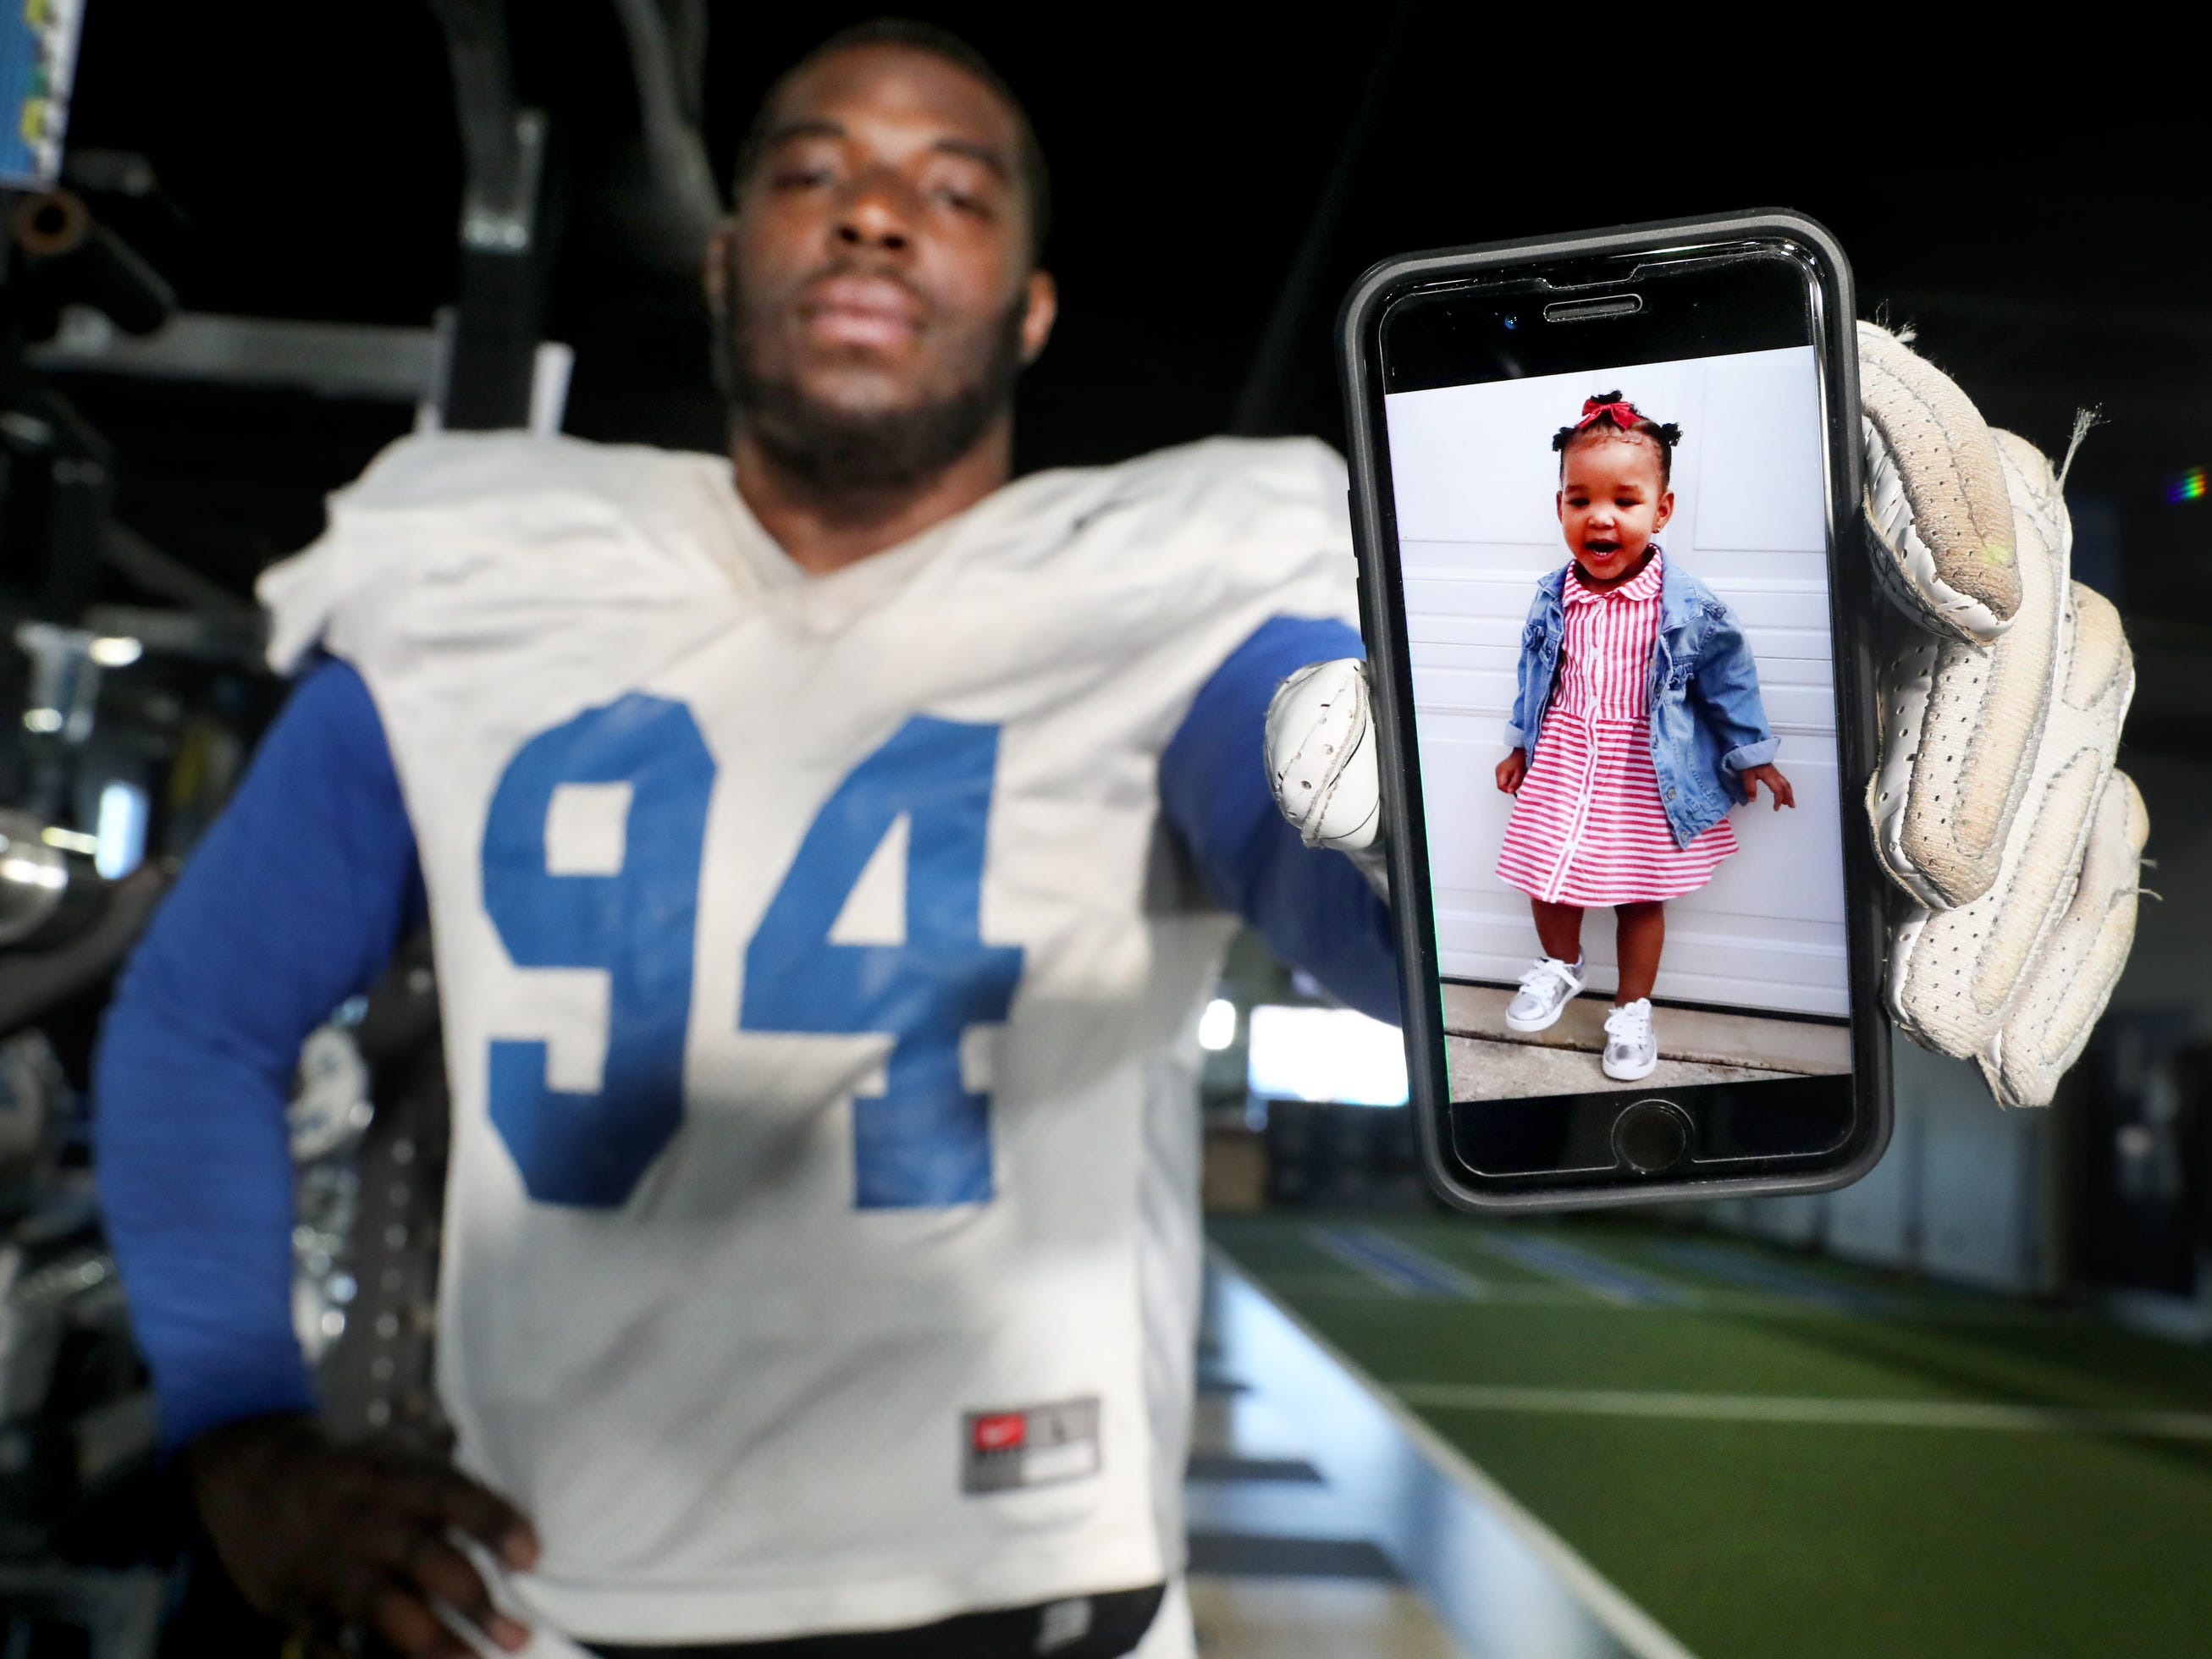 MTSU's defensive lineman Tyshun Render holds up a image of his one-year-old daughter Kenzlie Render, in the MTSU weight room, on Tuesday, March 26, 2019. Although Tyshun Render is currently practicing football for the upcoming fall season, part of his heart is back in Atlanta with his daughter Kenzlie Render, who he video chats daily.